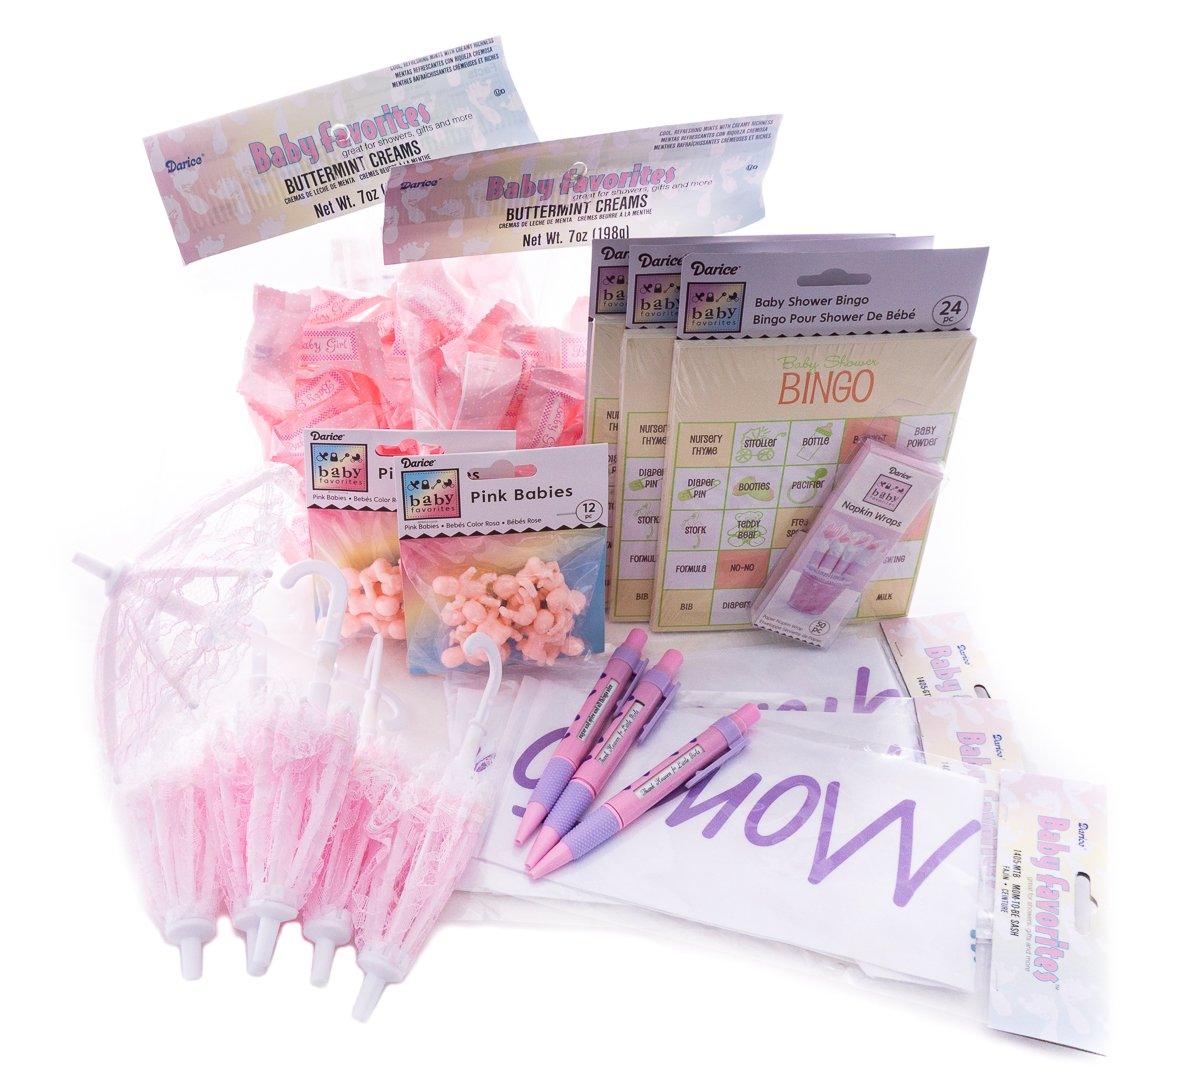 Baby Shower Party - Its a Girl! Bingo Game, Mom To Be and Grandma To Be Sashes, Pink Umbrella Set, Miniature Babies, Baby Girl Pens, Mints, Napkin Holders | Girl Shower Party Supplies by Baby Shower